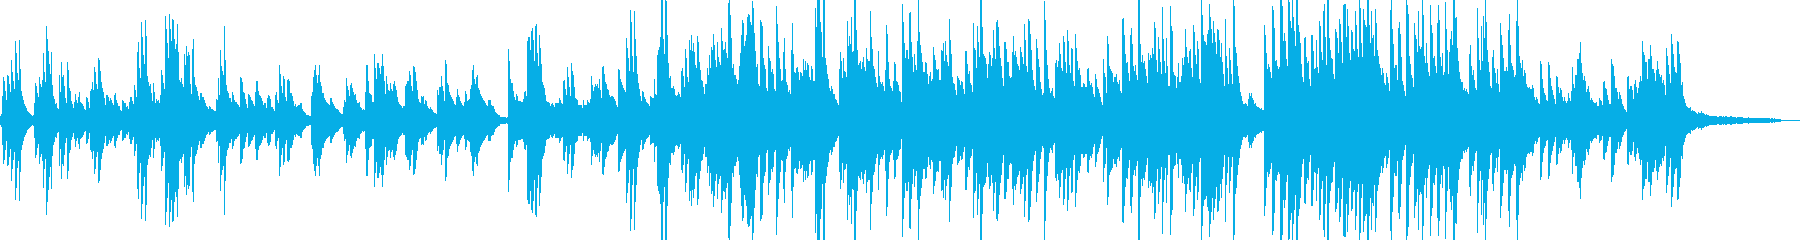 Wedding gorgeous and moving piano solo's reproduced waveform